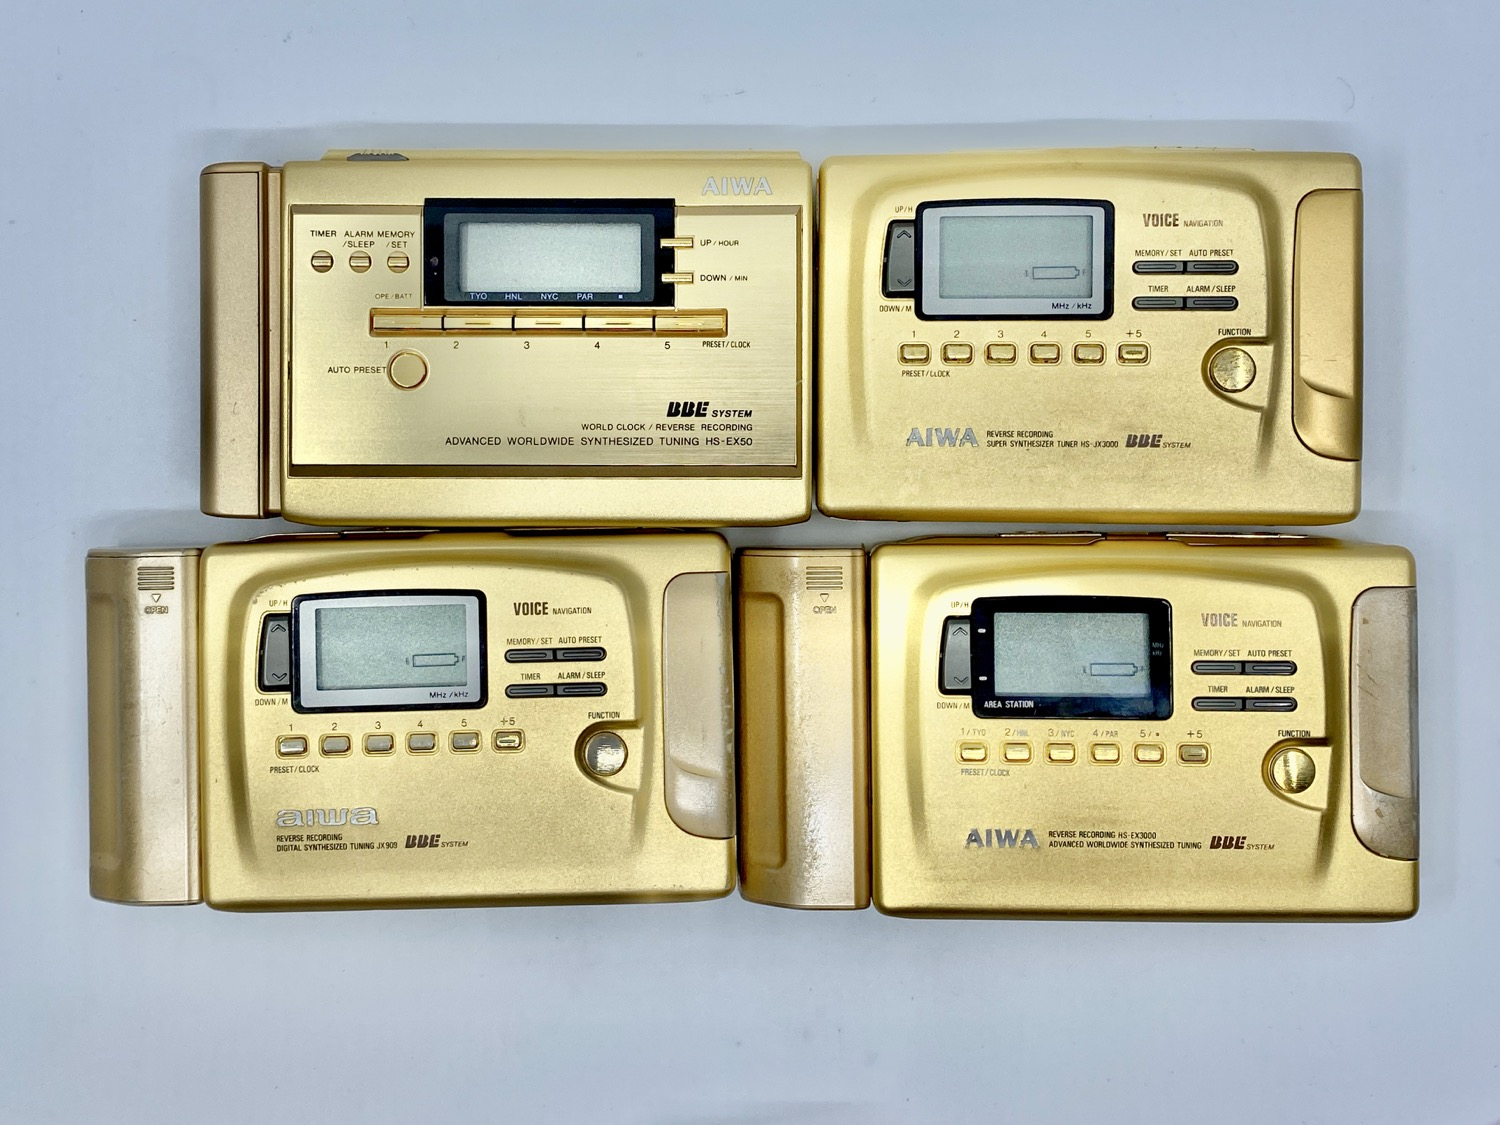 Aiwa Gold Portable Cassette Player Collection